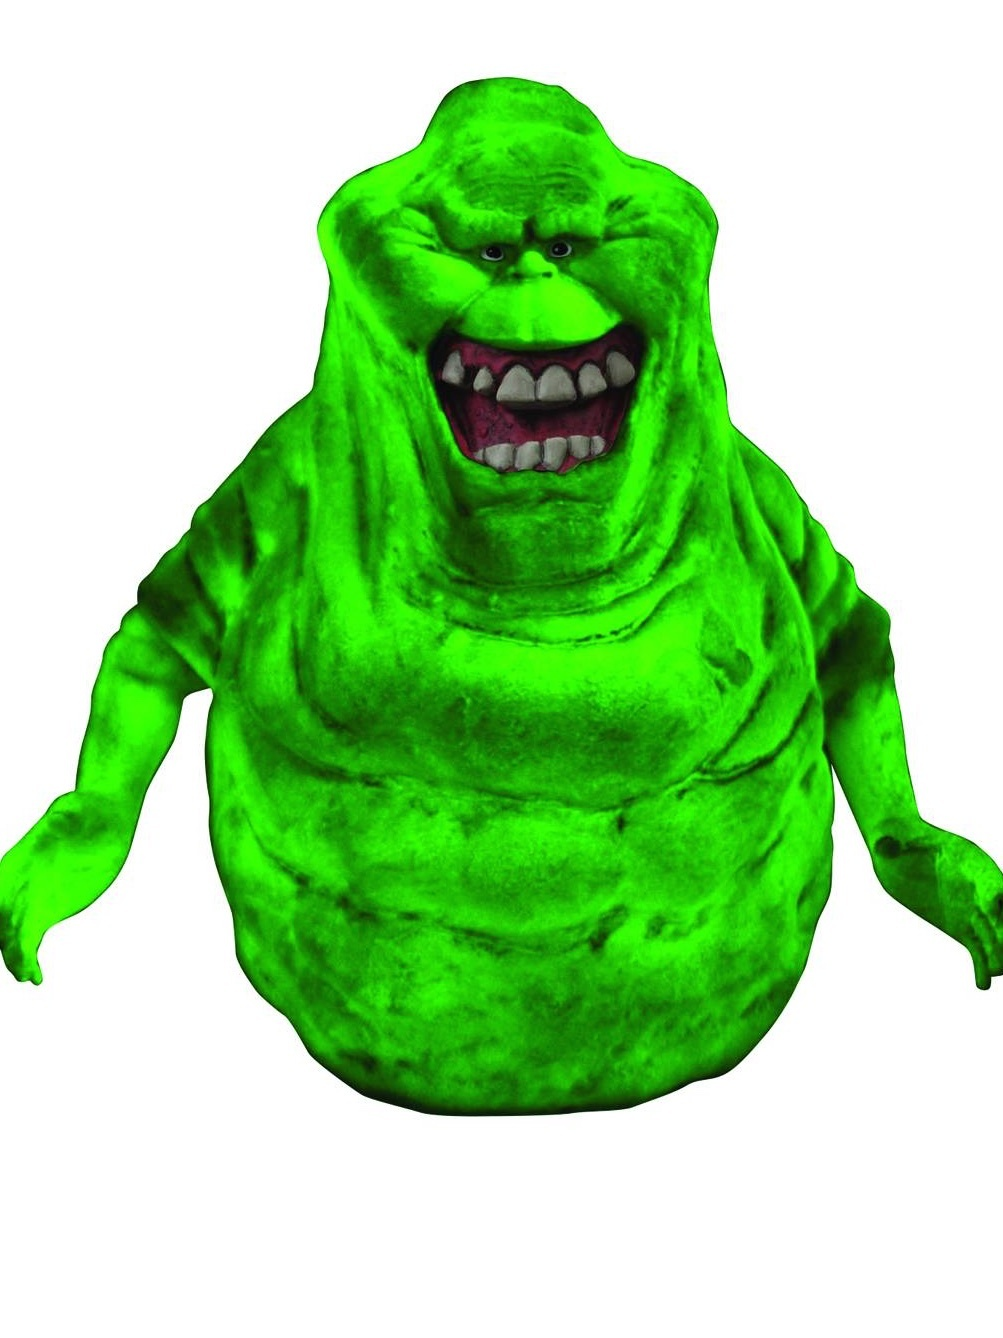 Ghostbusters Slimer Gid Bank